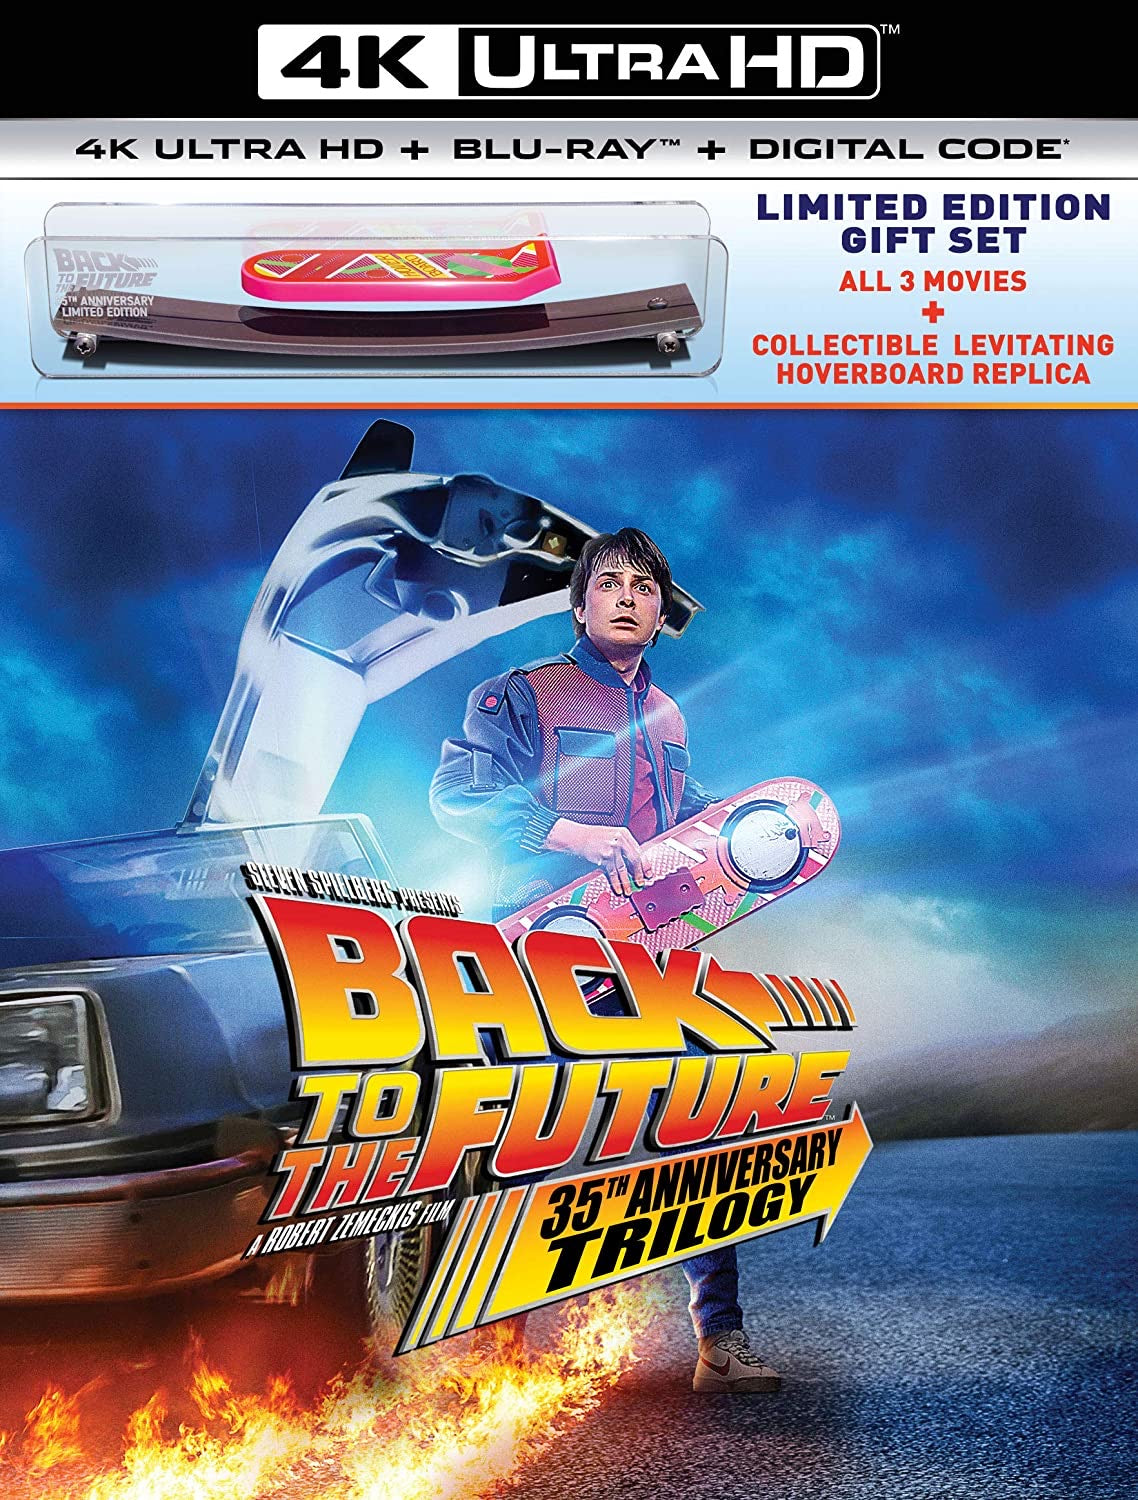 Back To The Future: The Complete Trilogy (1985-1990) Vudu or Movies Anywhere 4K code